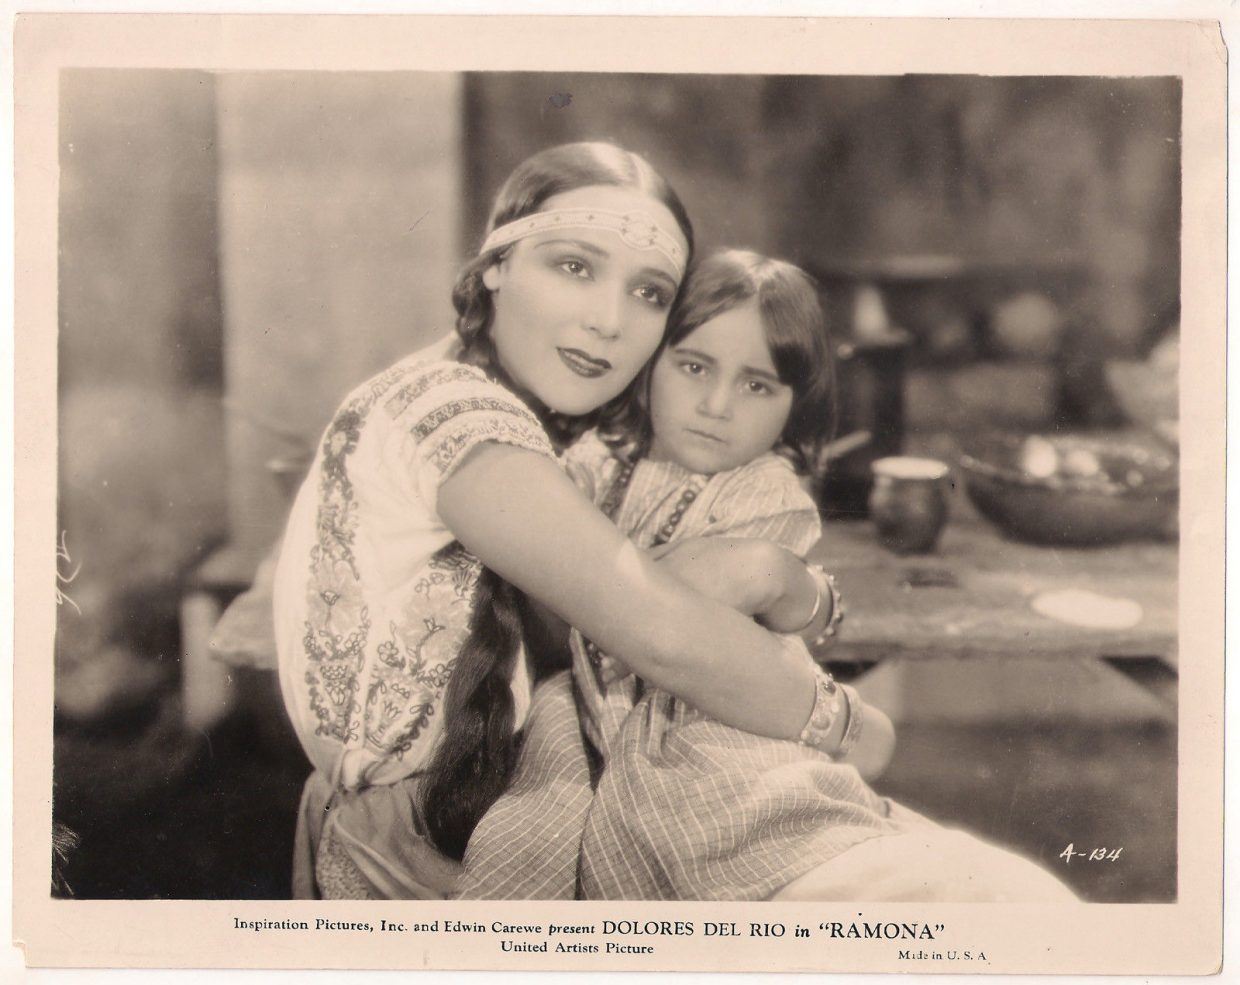 """A picture of Dolores Del Rio, who starred in the 1928 silent film """"Ramona"""" This film will soon be shown at the Bud Werner Memorial Library for the One Book Steamboat program that features the classic novel by Helen Hunt Jackson, """"Ramona."""""""